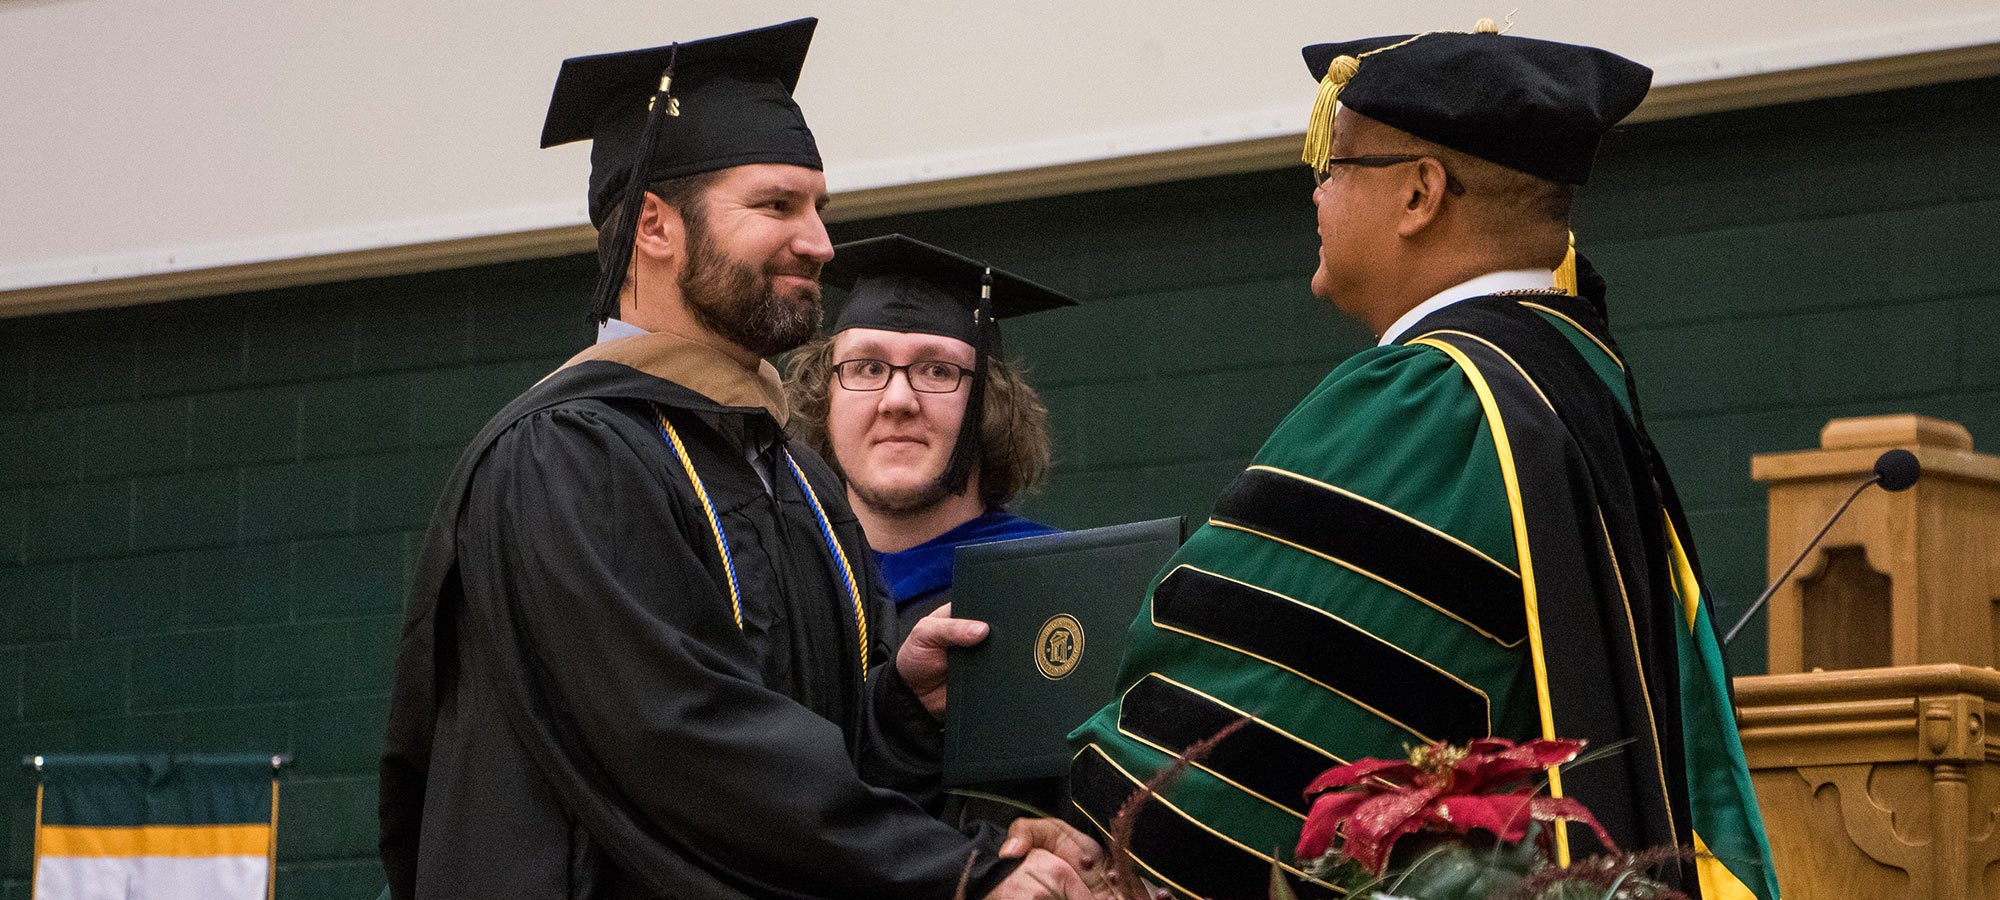 Apply for Graduate Programs at Black Hills State University!